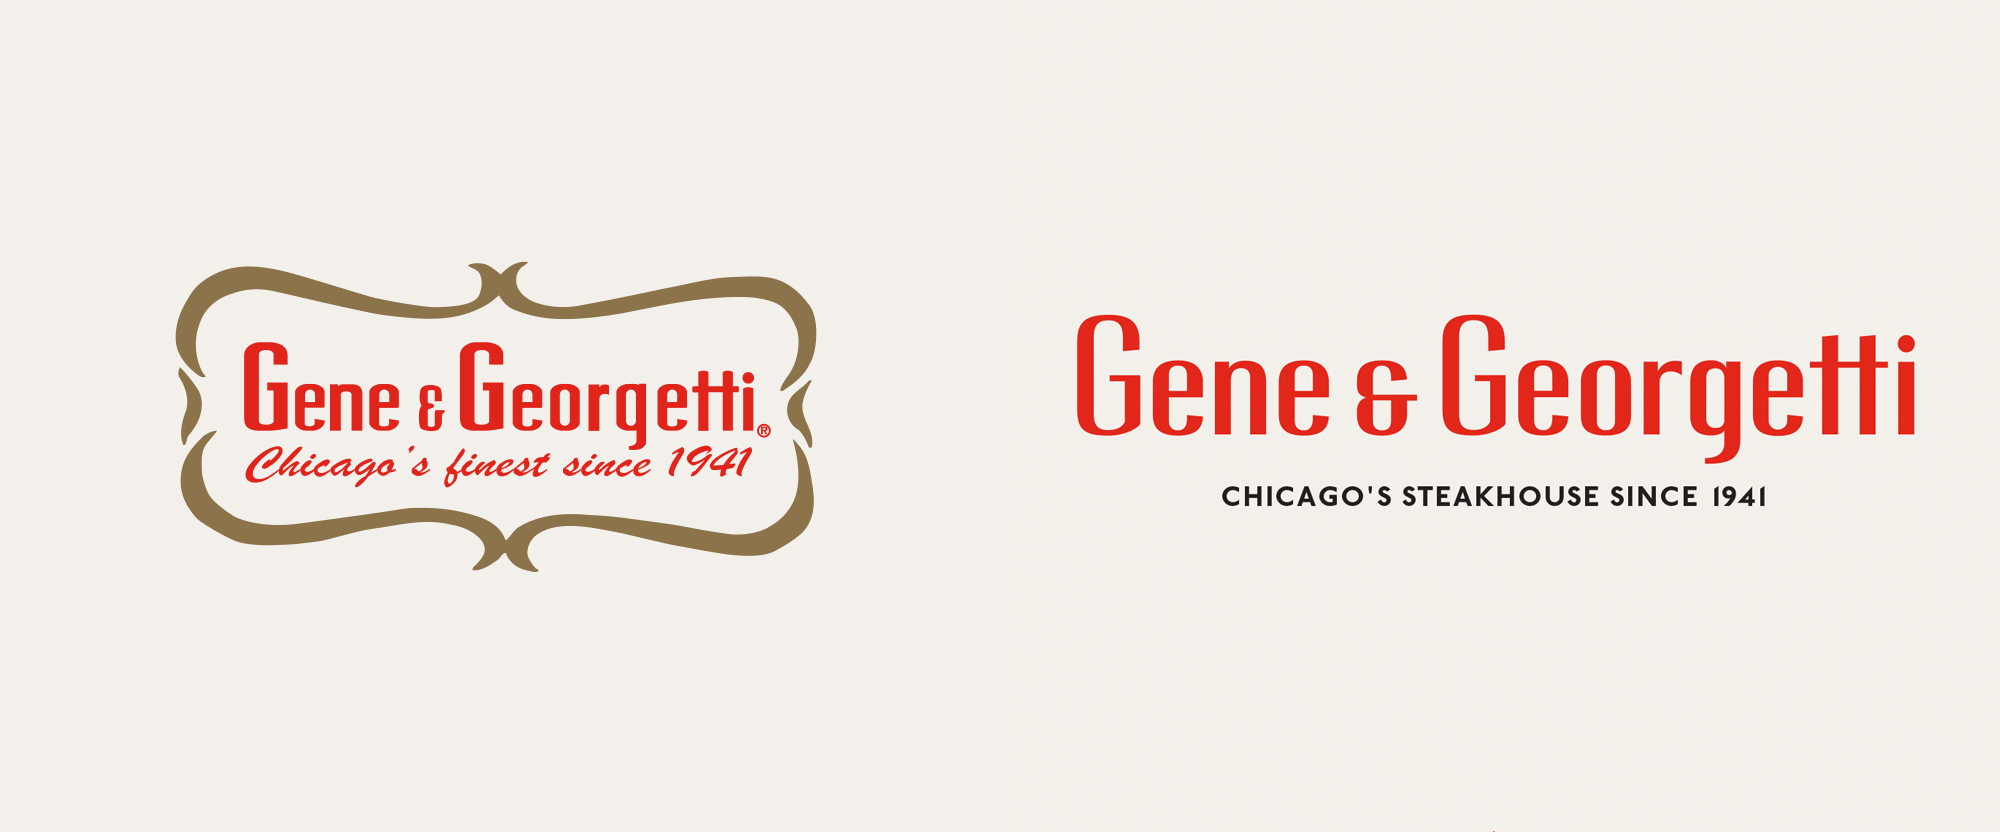 New Logo and Identity for Gene & Georgetti by Paperwhite Studio